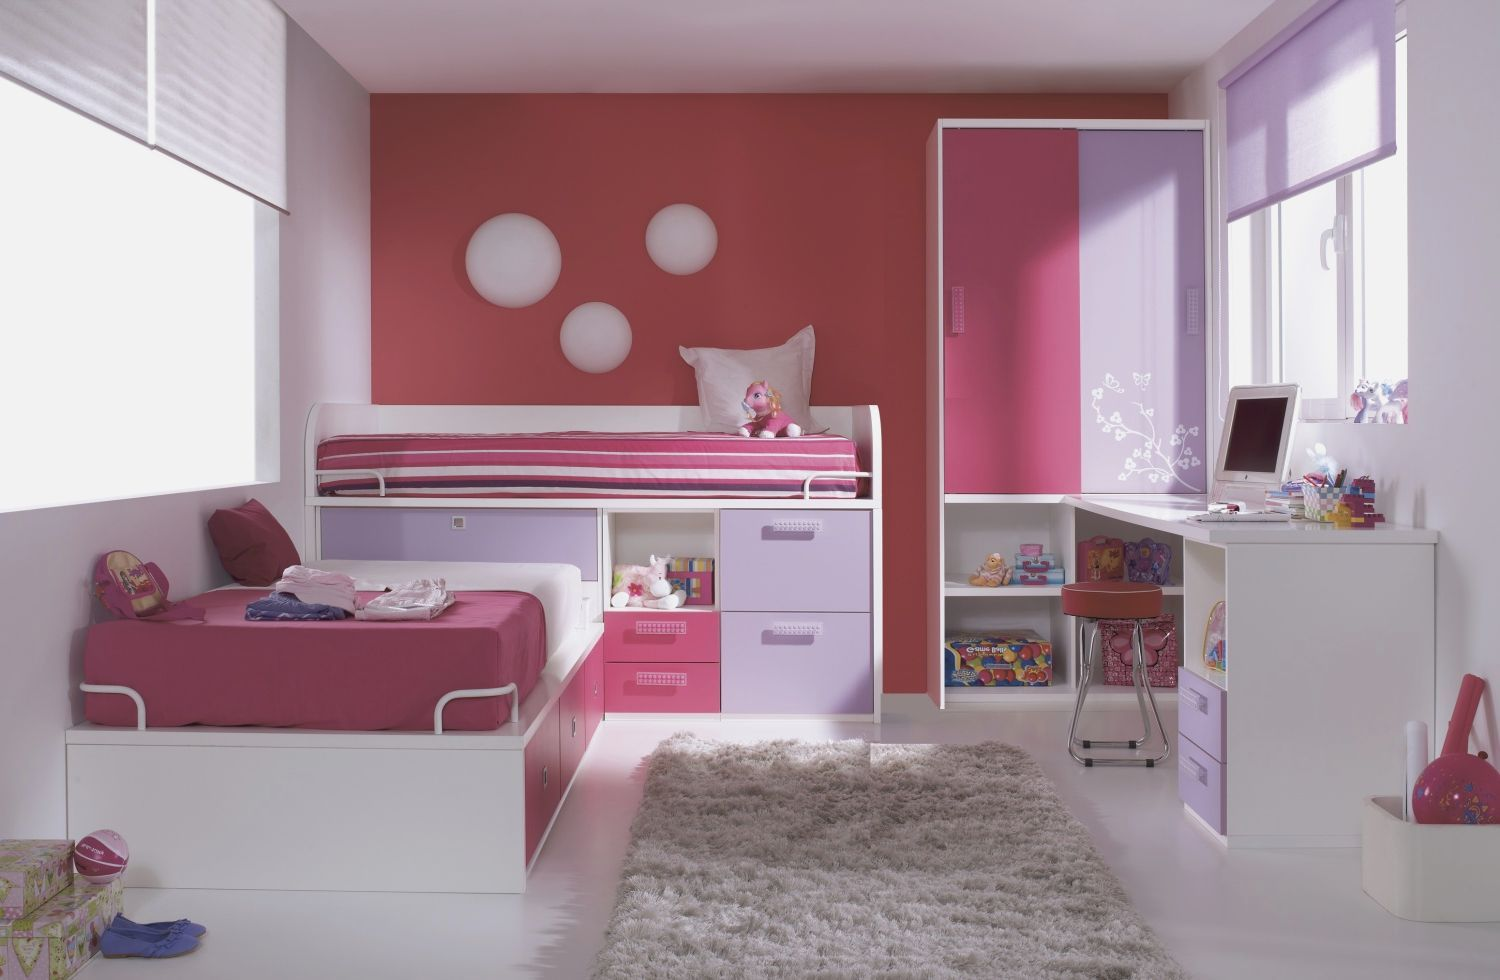 Childrens Bedroom Furniture Uk     more picture Childrens Bedroom Furniture Uk please visit www.gr7ee.com